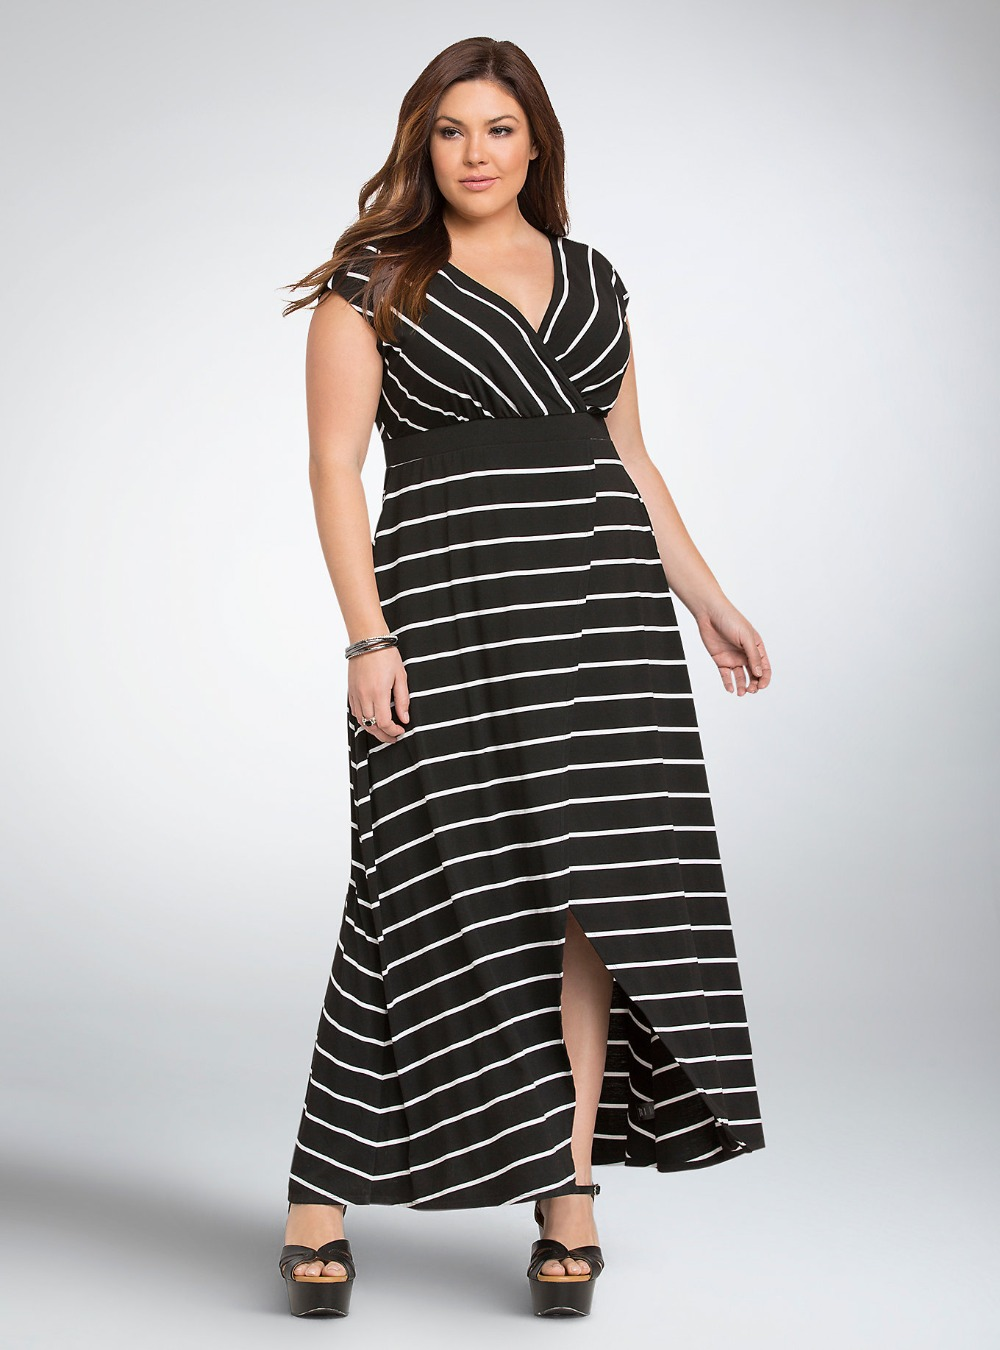 Our plus size casual dresses are both stylish and comfortable. Spend an evening on the town in one of our black body con dresses, Sunday brunch in one of our flowy maxis, or enjoy the sun in one of our light shift dresses.